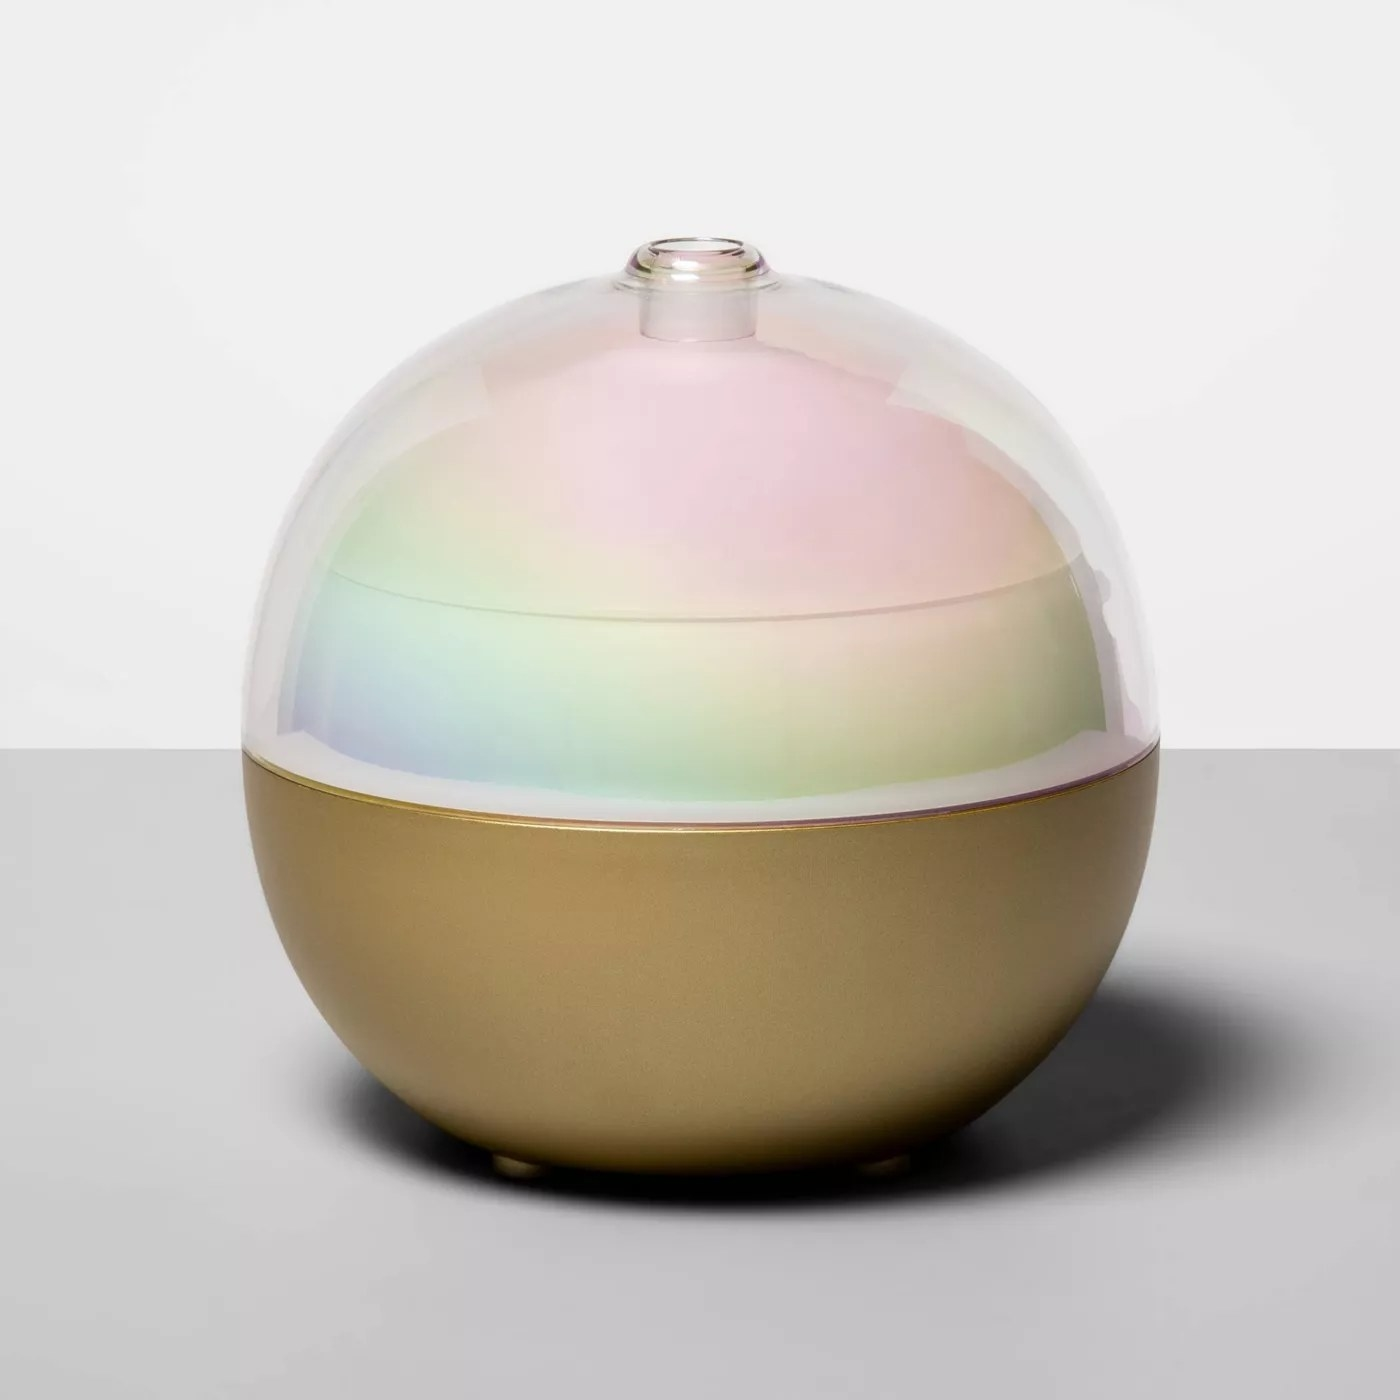 Round gold and LED light essential oil diffuser